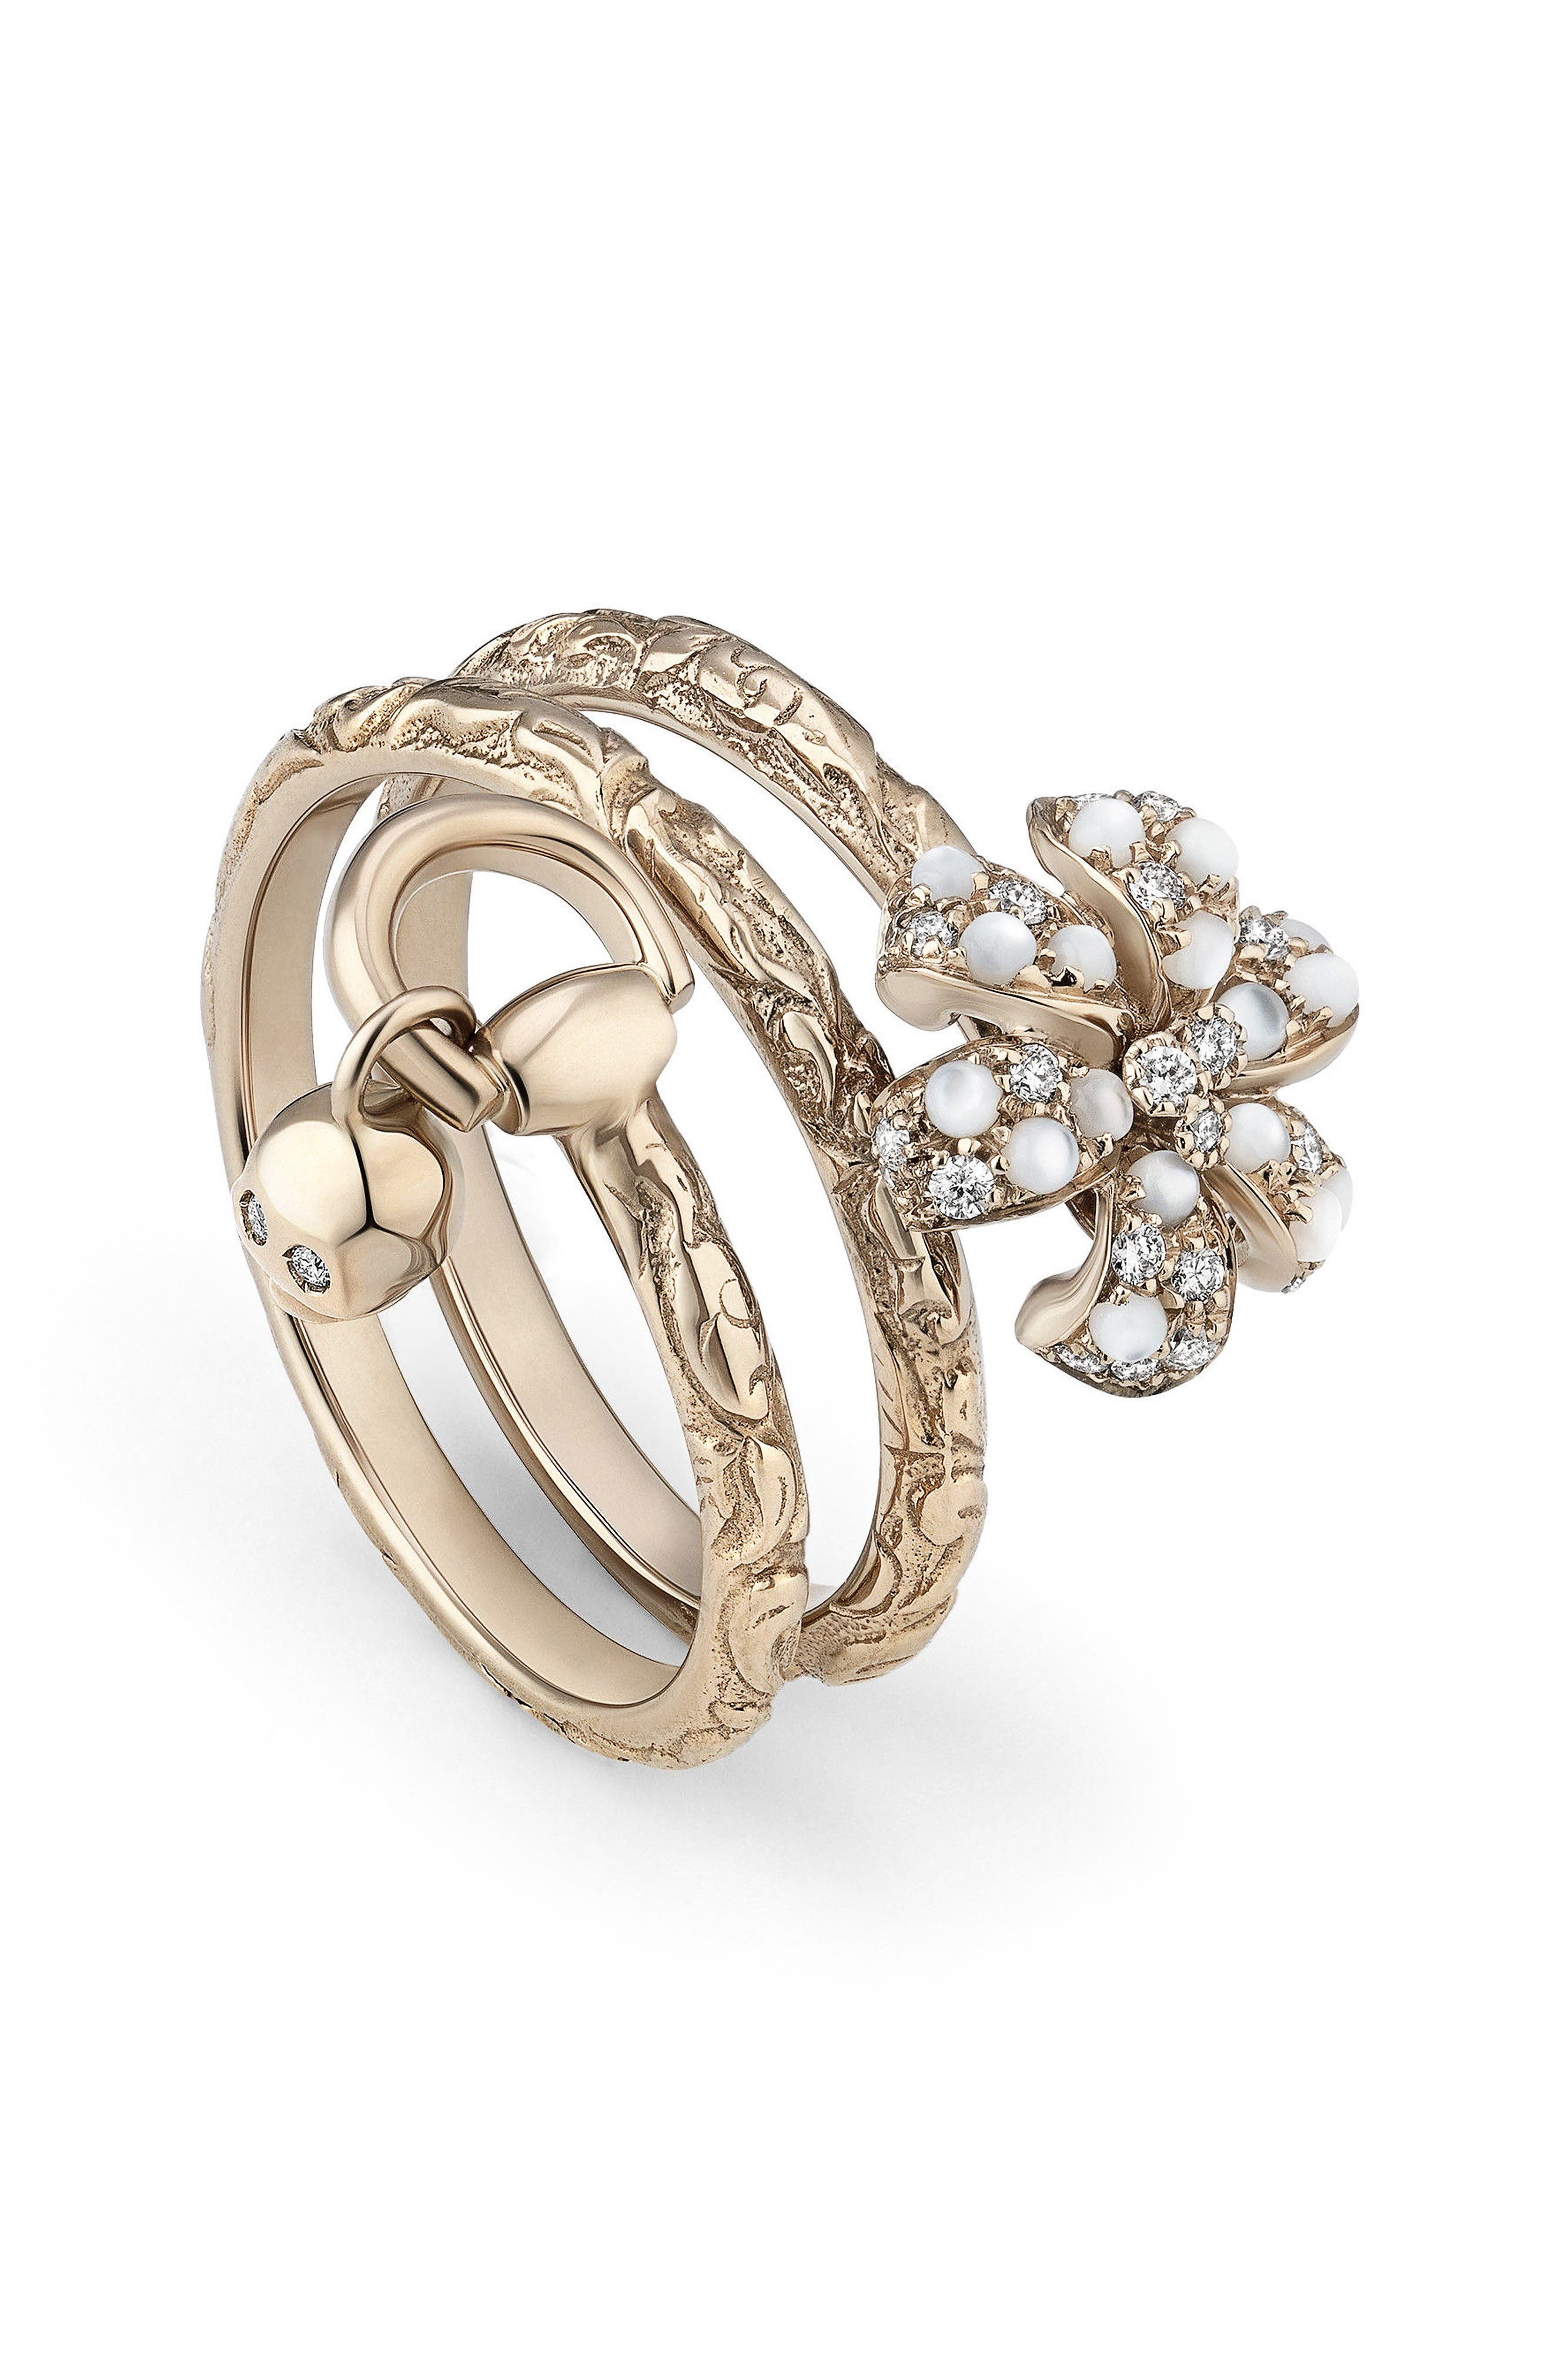 Main Image - Gucci Flora Diamond & Mother of Pearl Wrap Ring